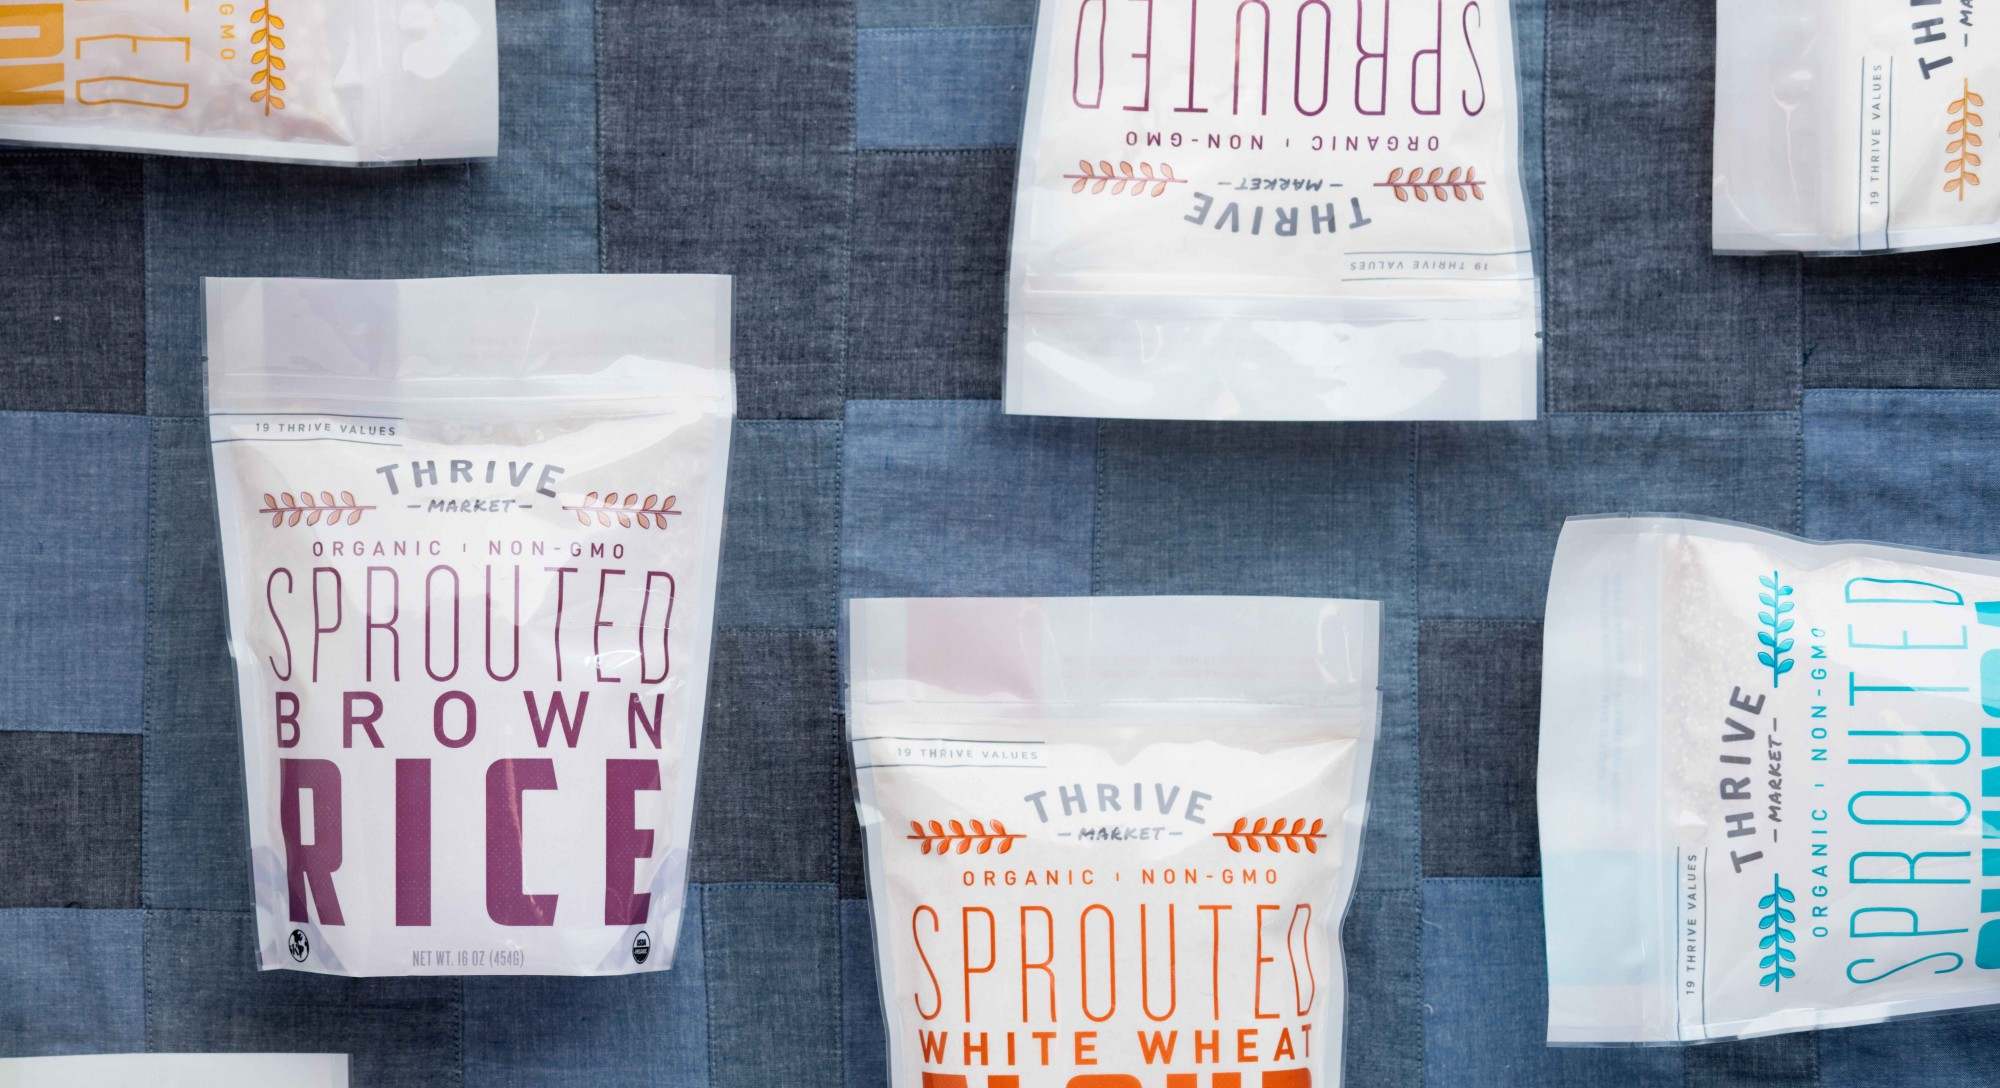 4 Good Reasons to Make the Switch to Sprouted Flours